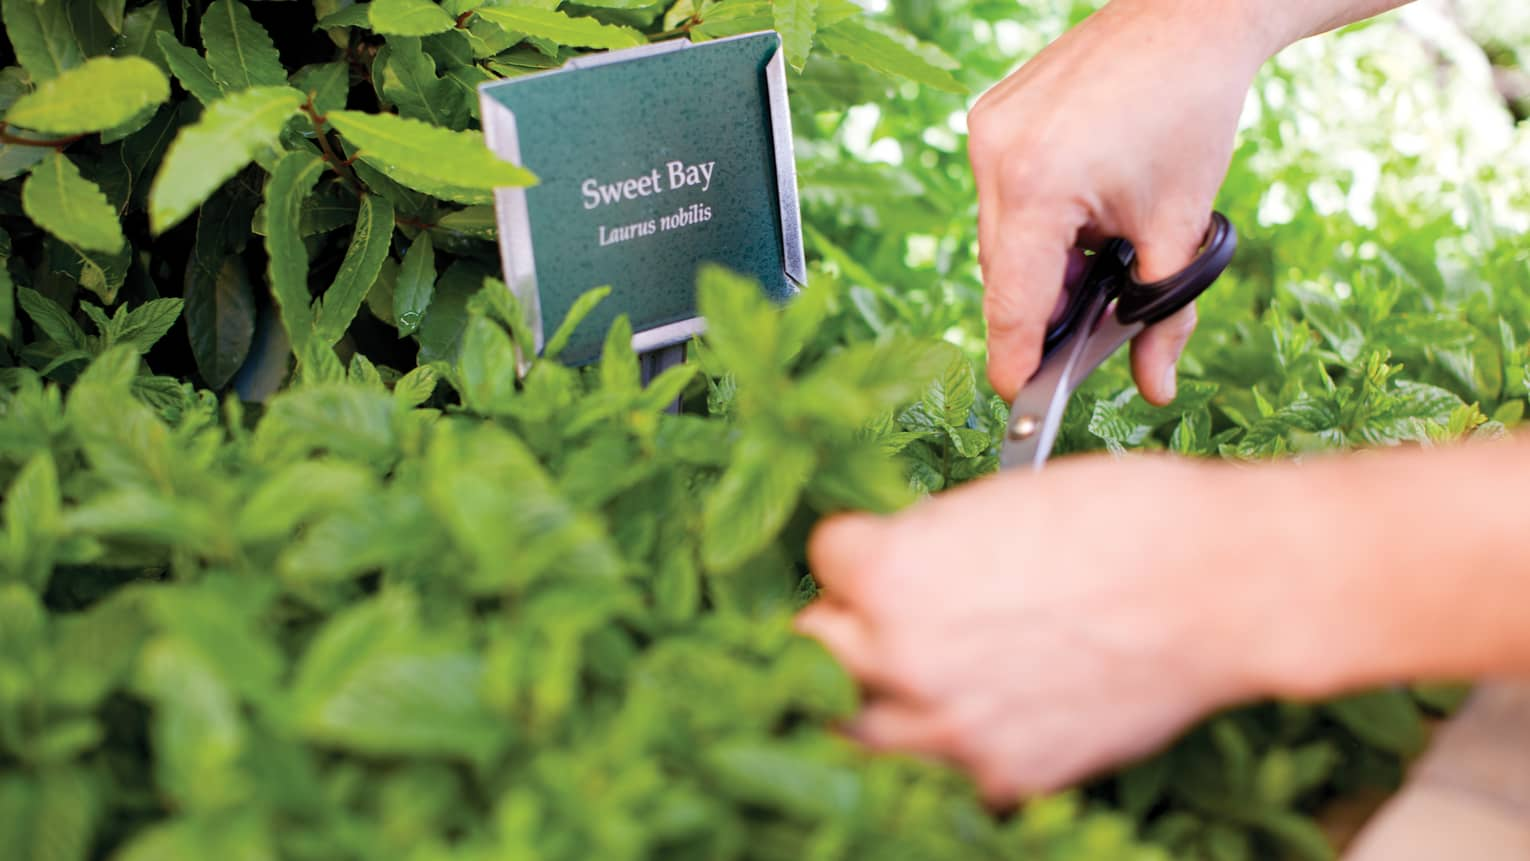 Close-up of hands clipping green herbs with scissors in garden